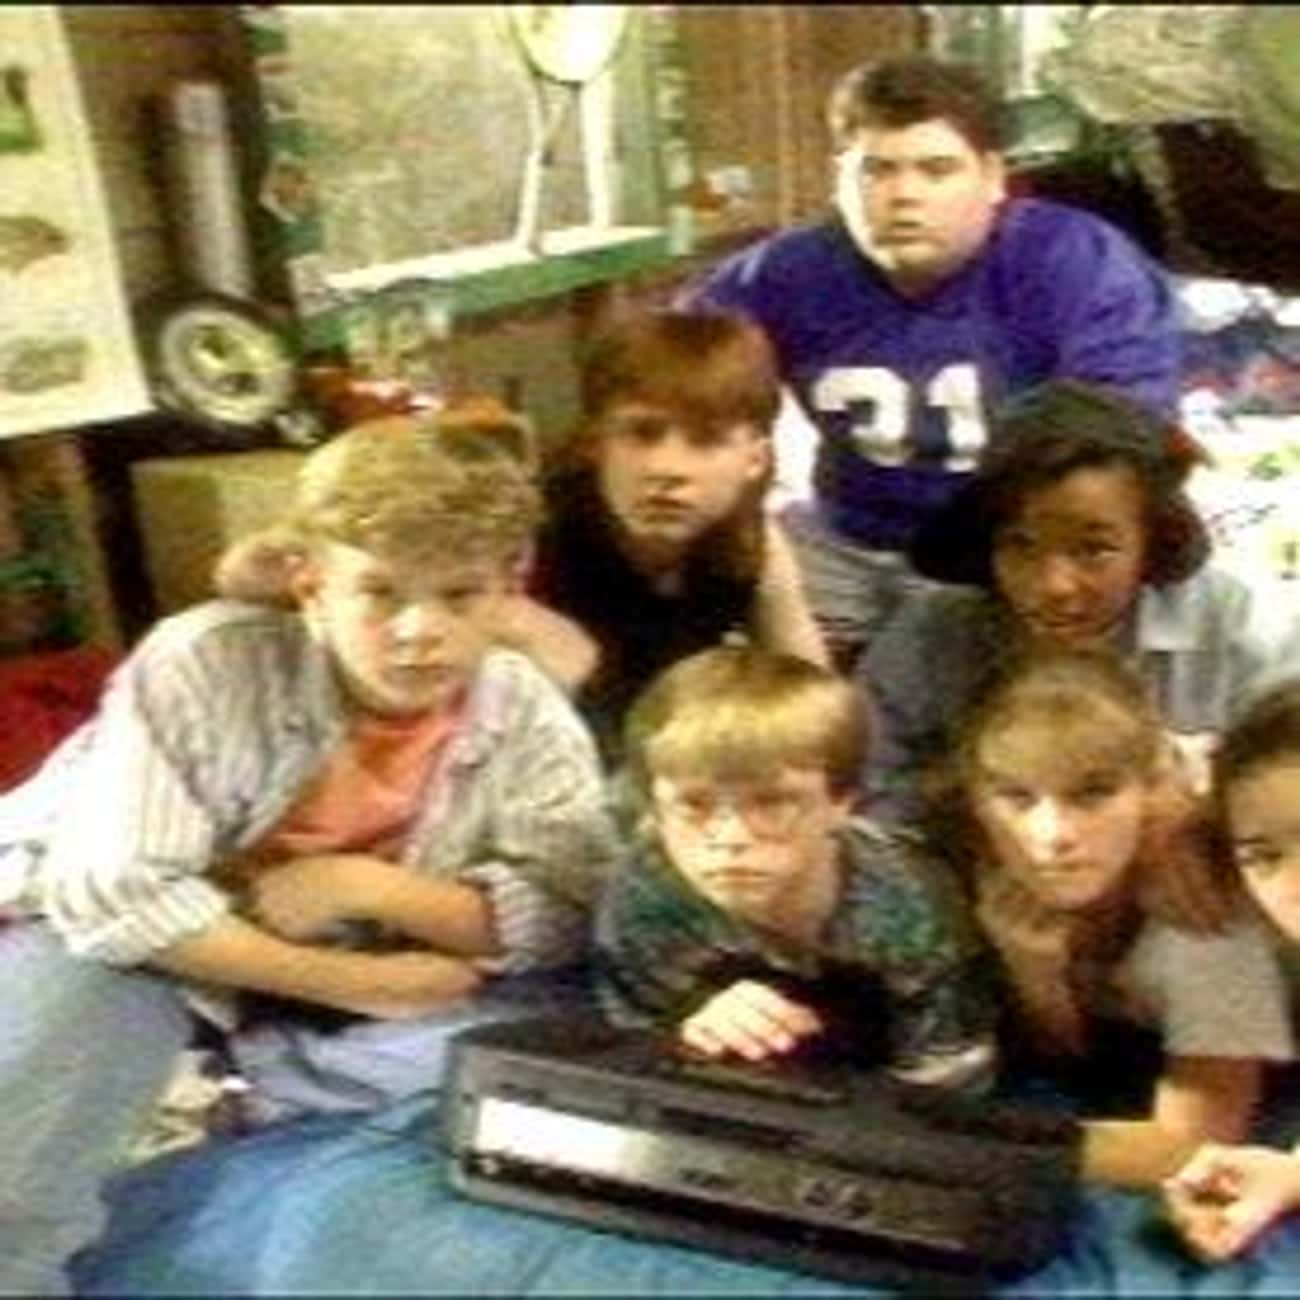 Salute Your Shorts is listed (or ranked) 1 on the list The Greatest TV Shows About Camp